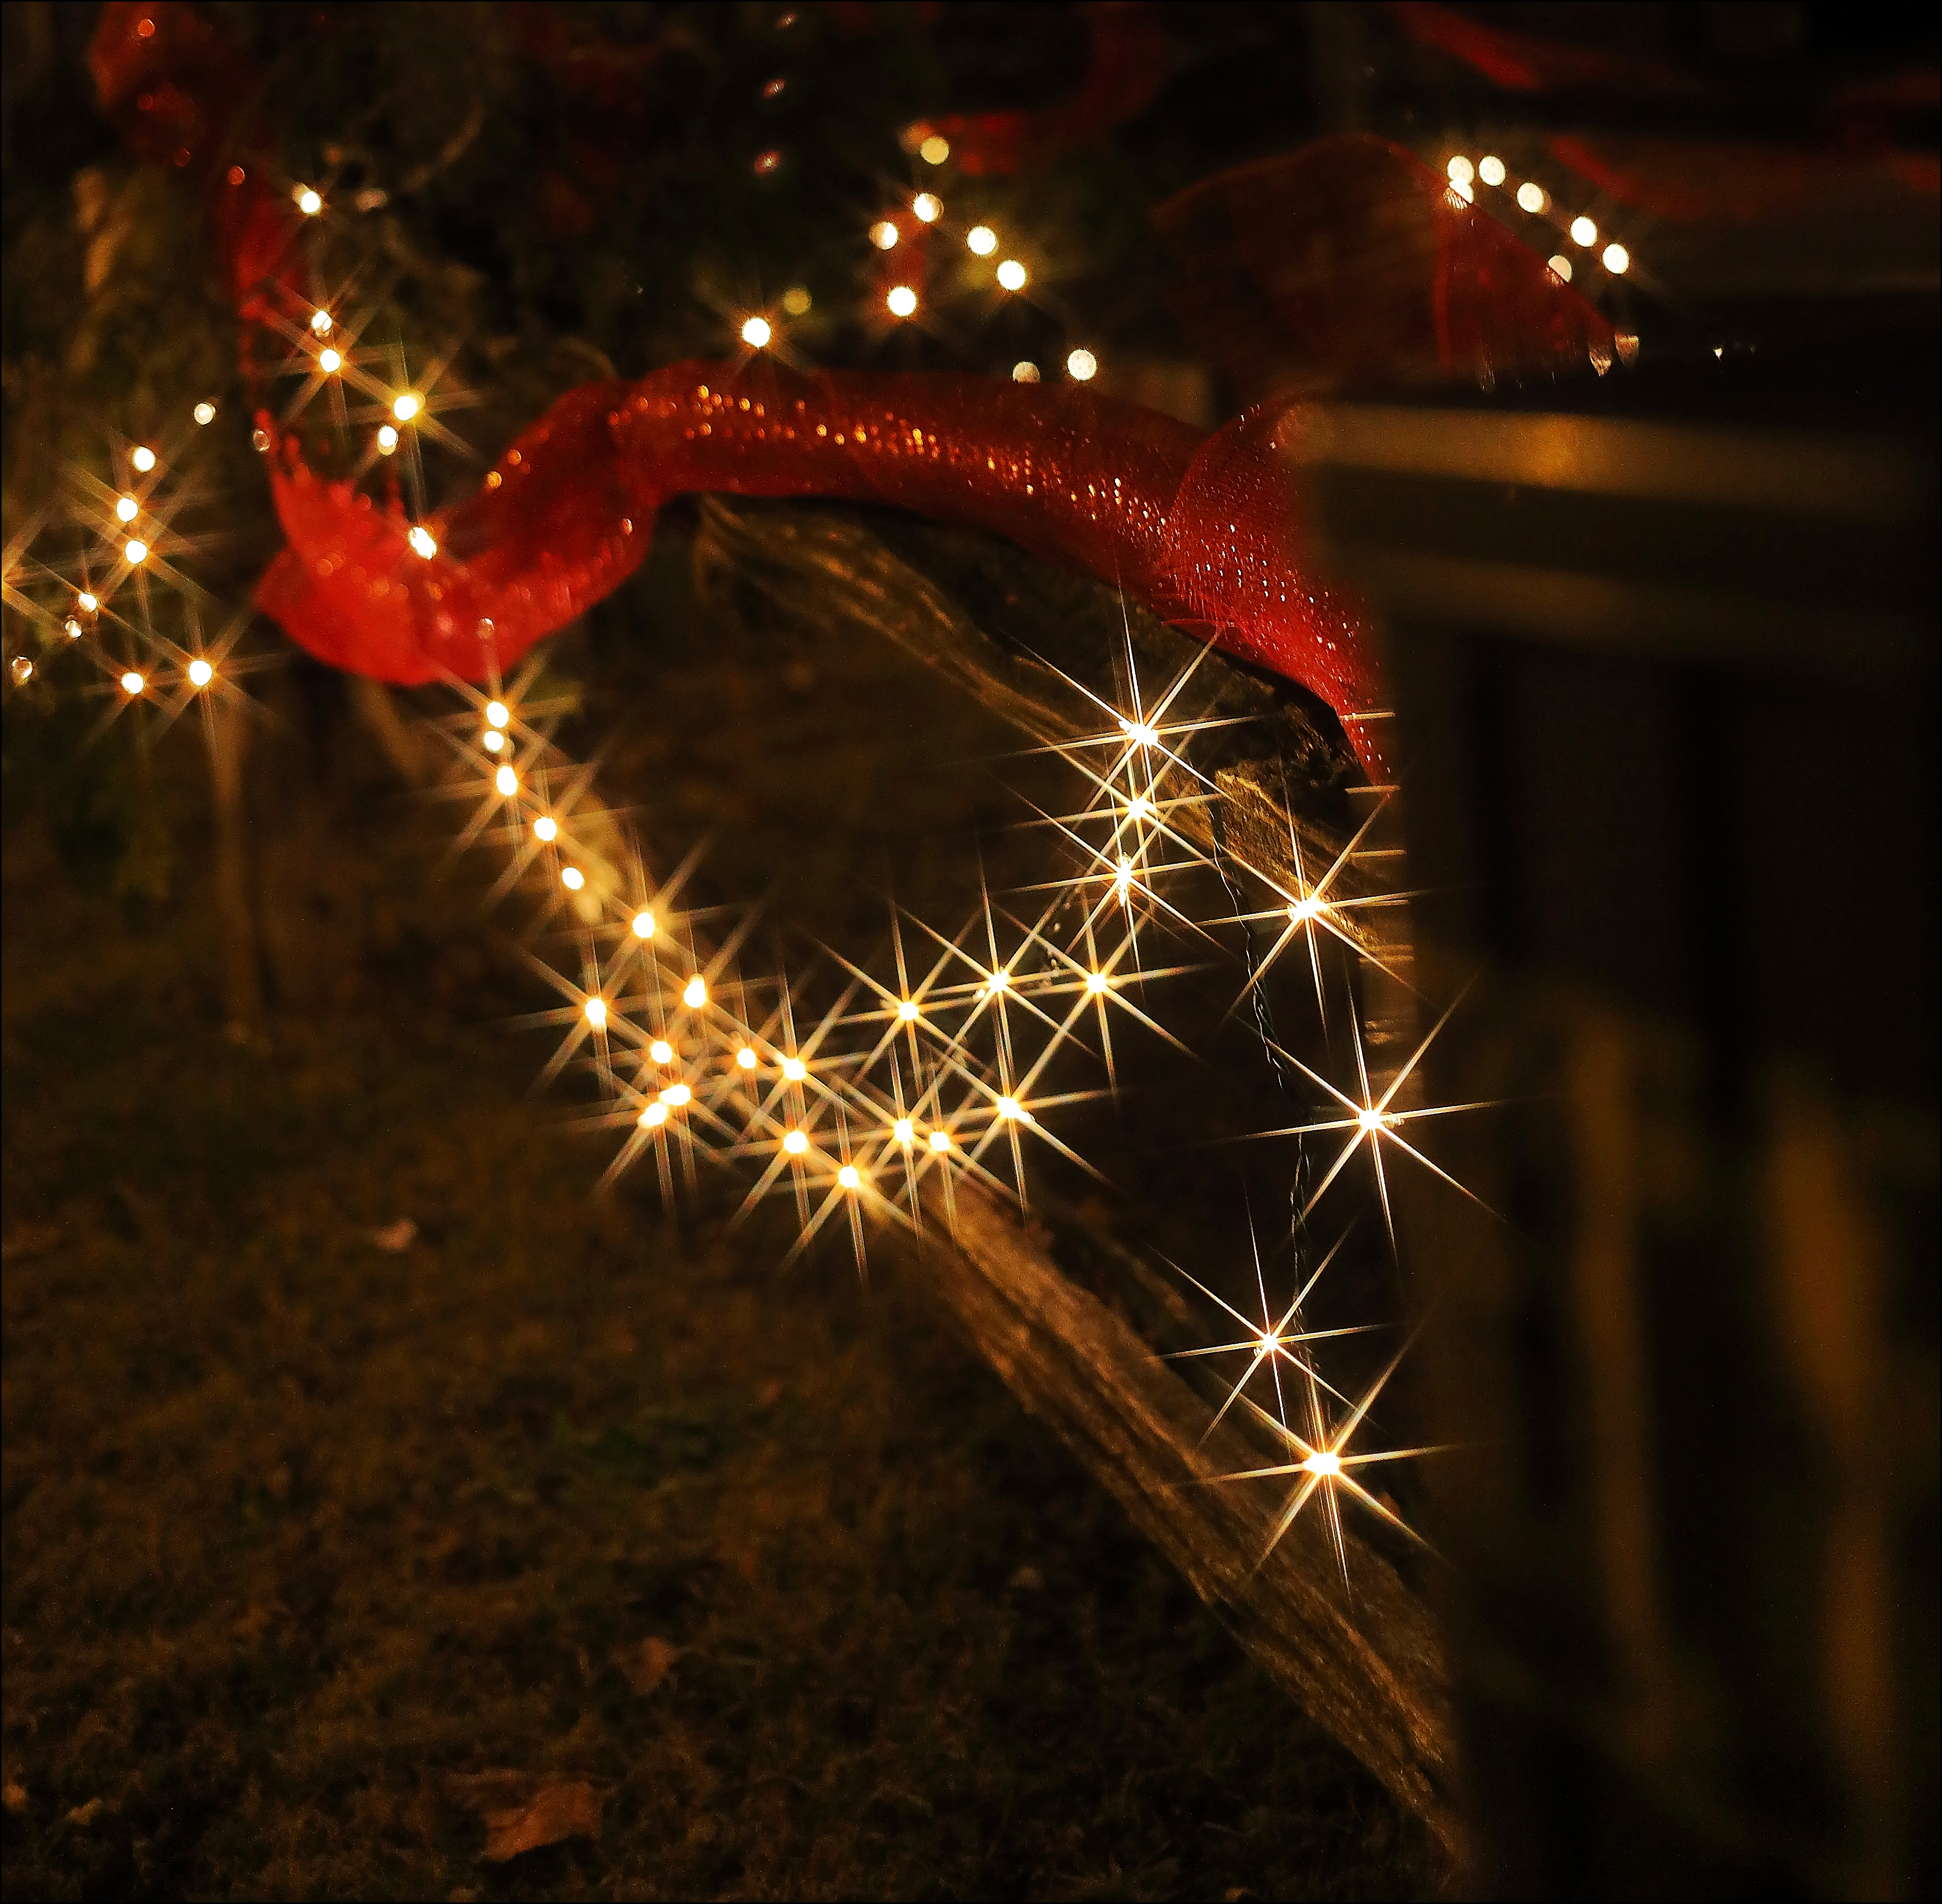 One Of The Older Homes & Always Decorated For Christmas. christmas, home, canon, star, filter, older, 6d. buy photo